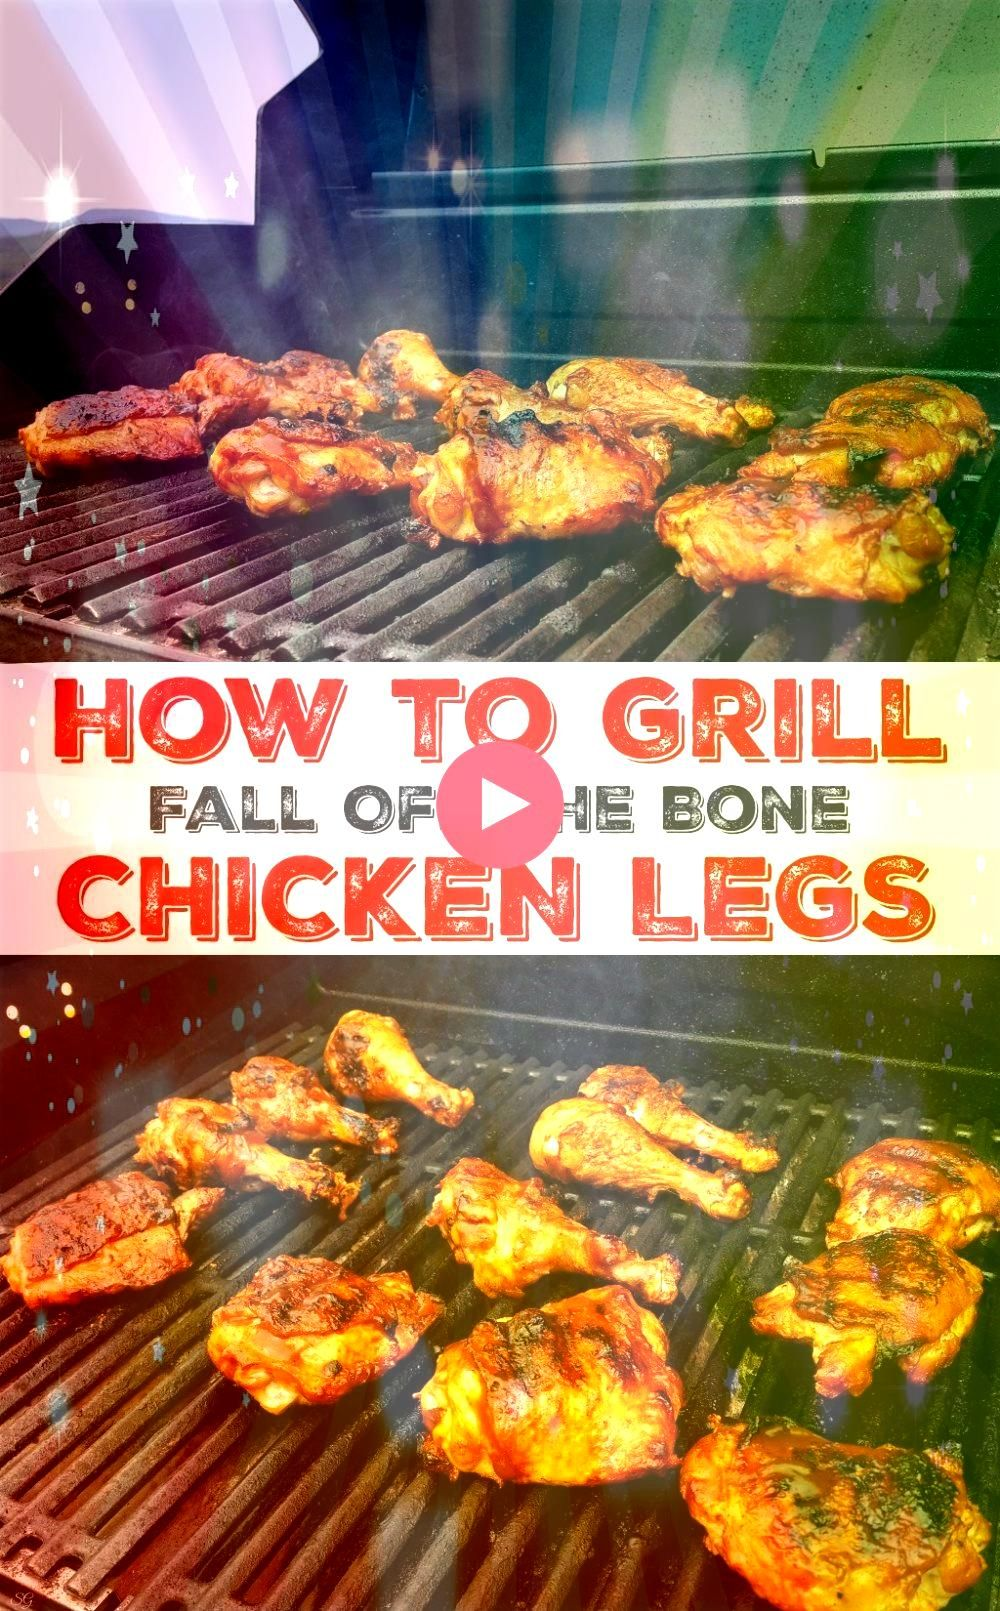 chicken legs Learn how to grill chicken legs that fall off the bone and taste so good youll want to cook them every night Fire up the BBQ and lets see how to grill thighs...